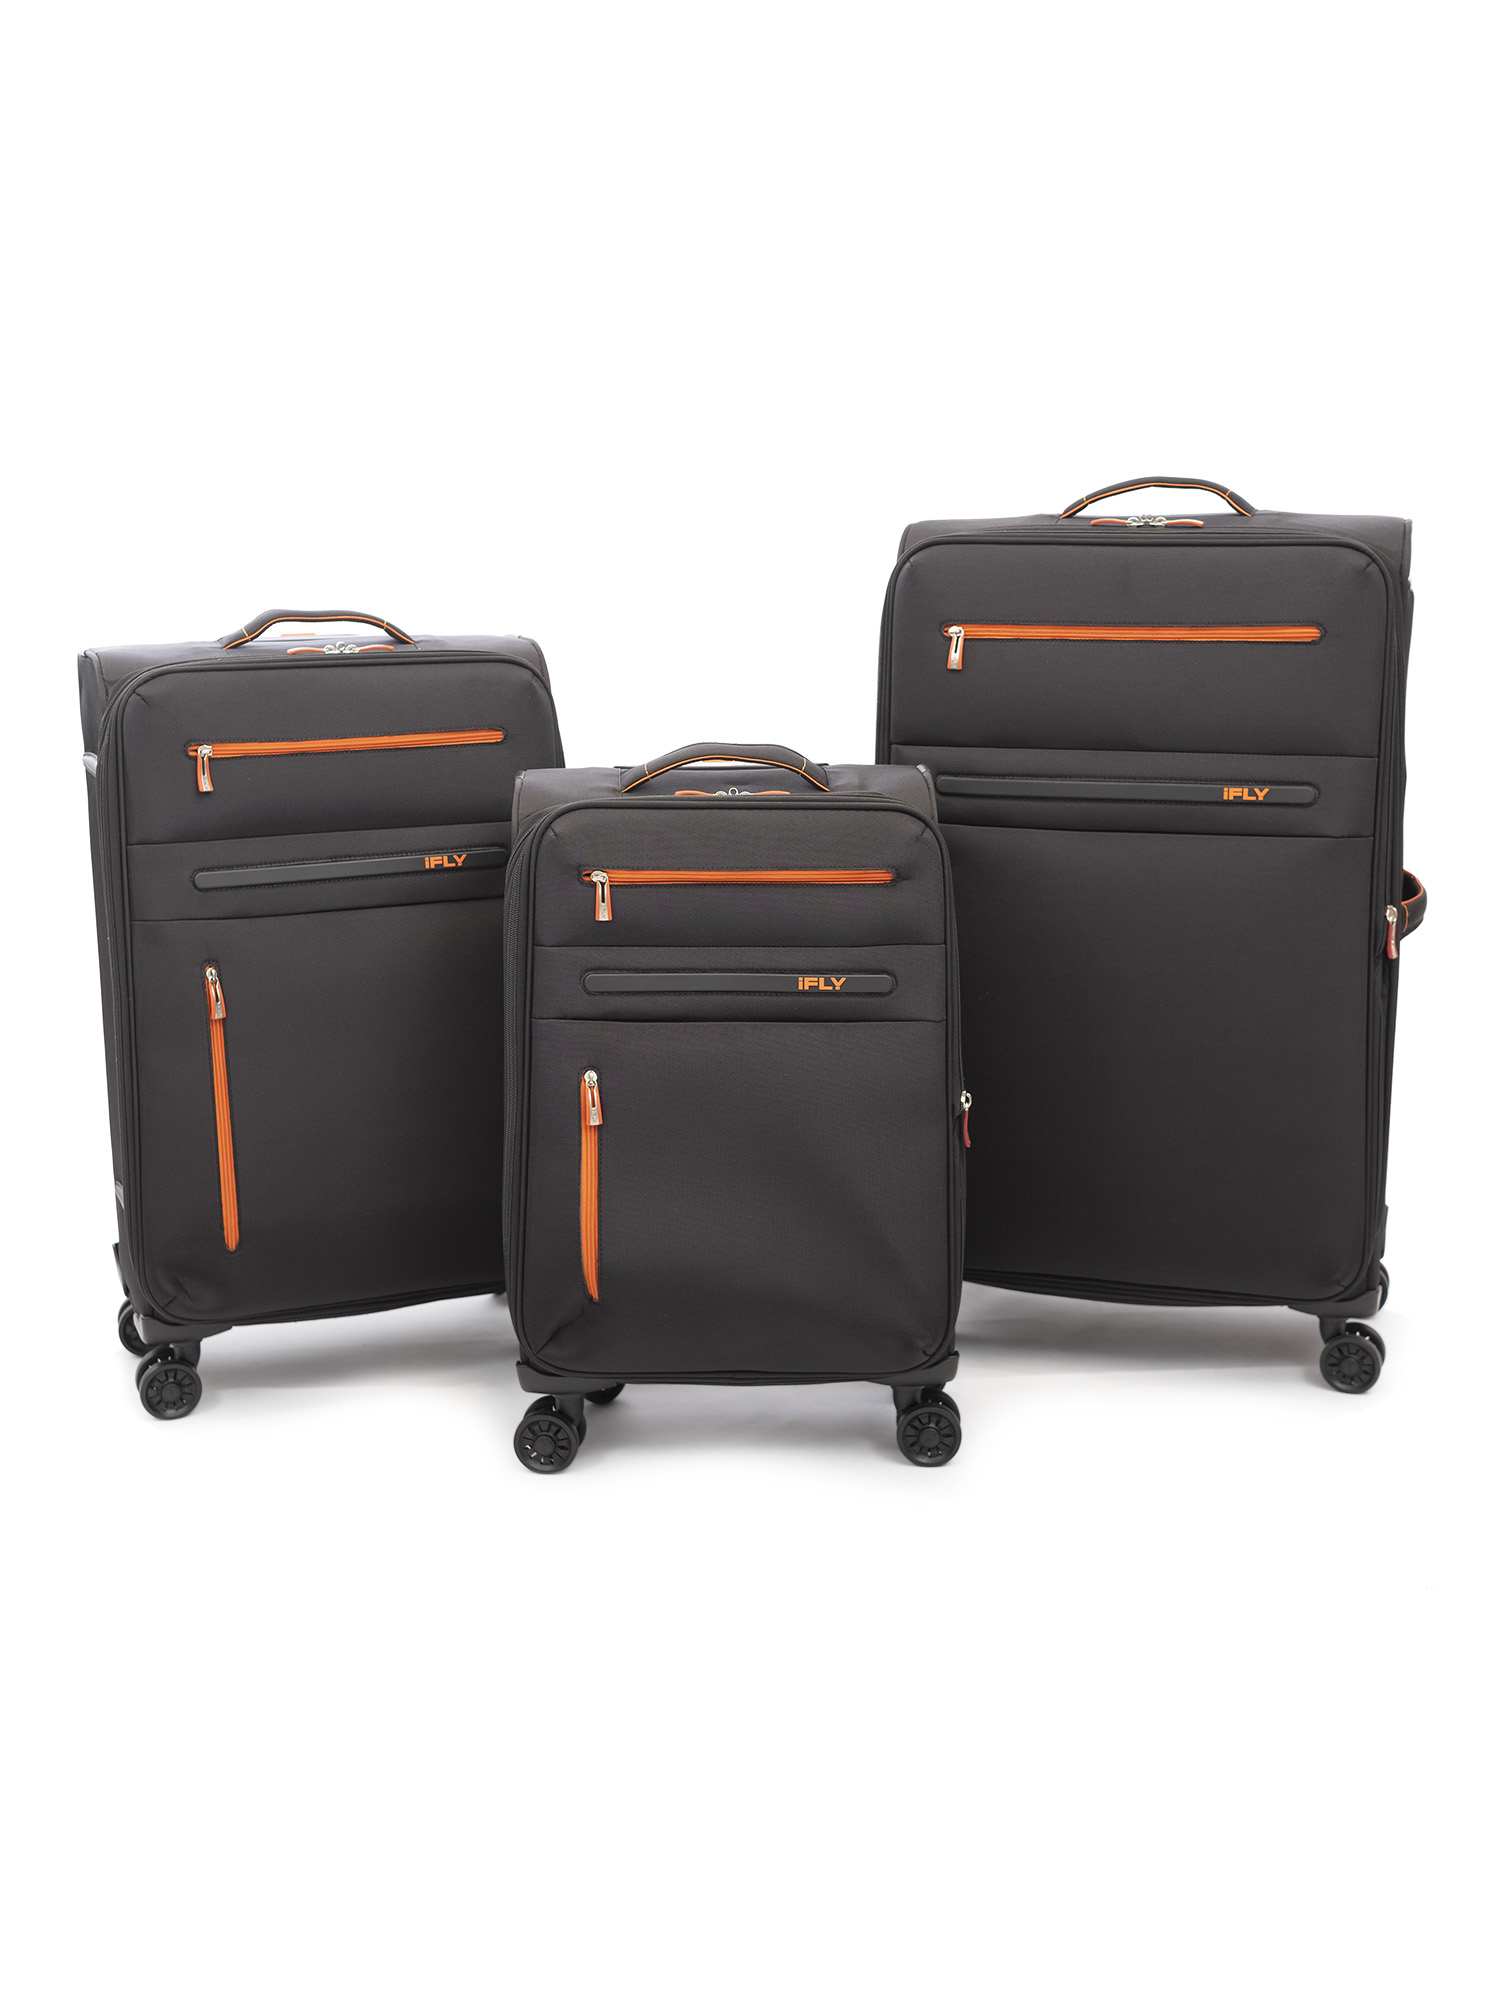 iFLY Soft Sided Luggage Omni 3 piece set, Black/Orange